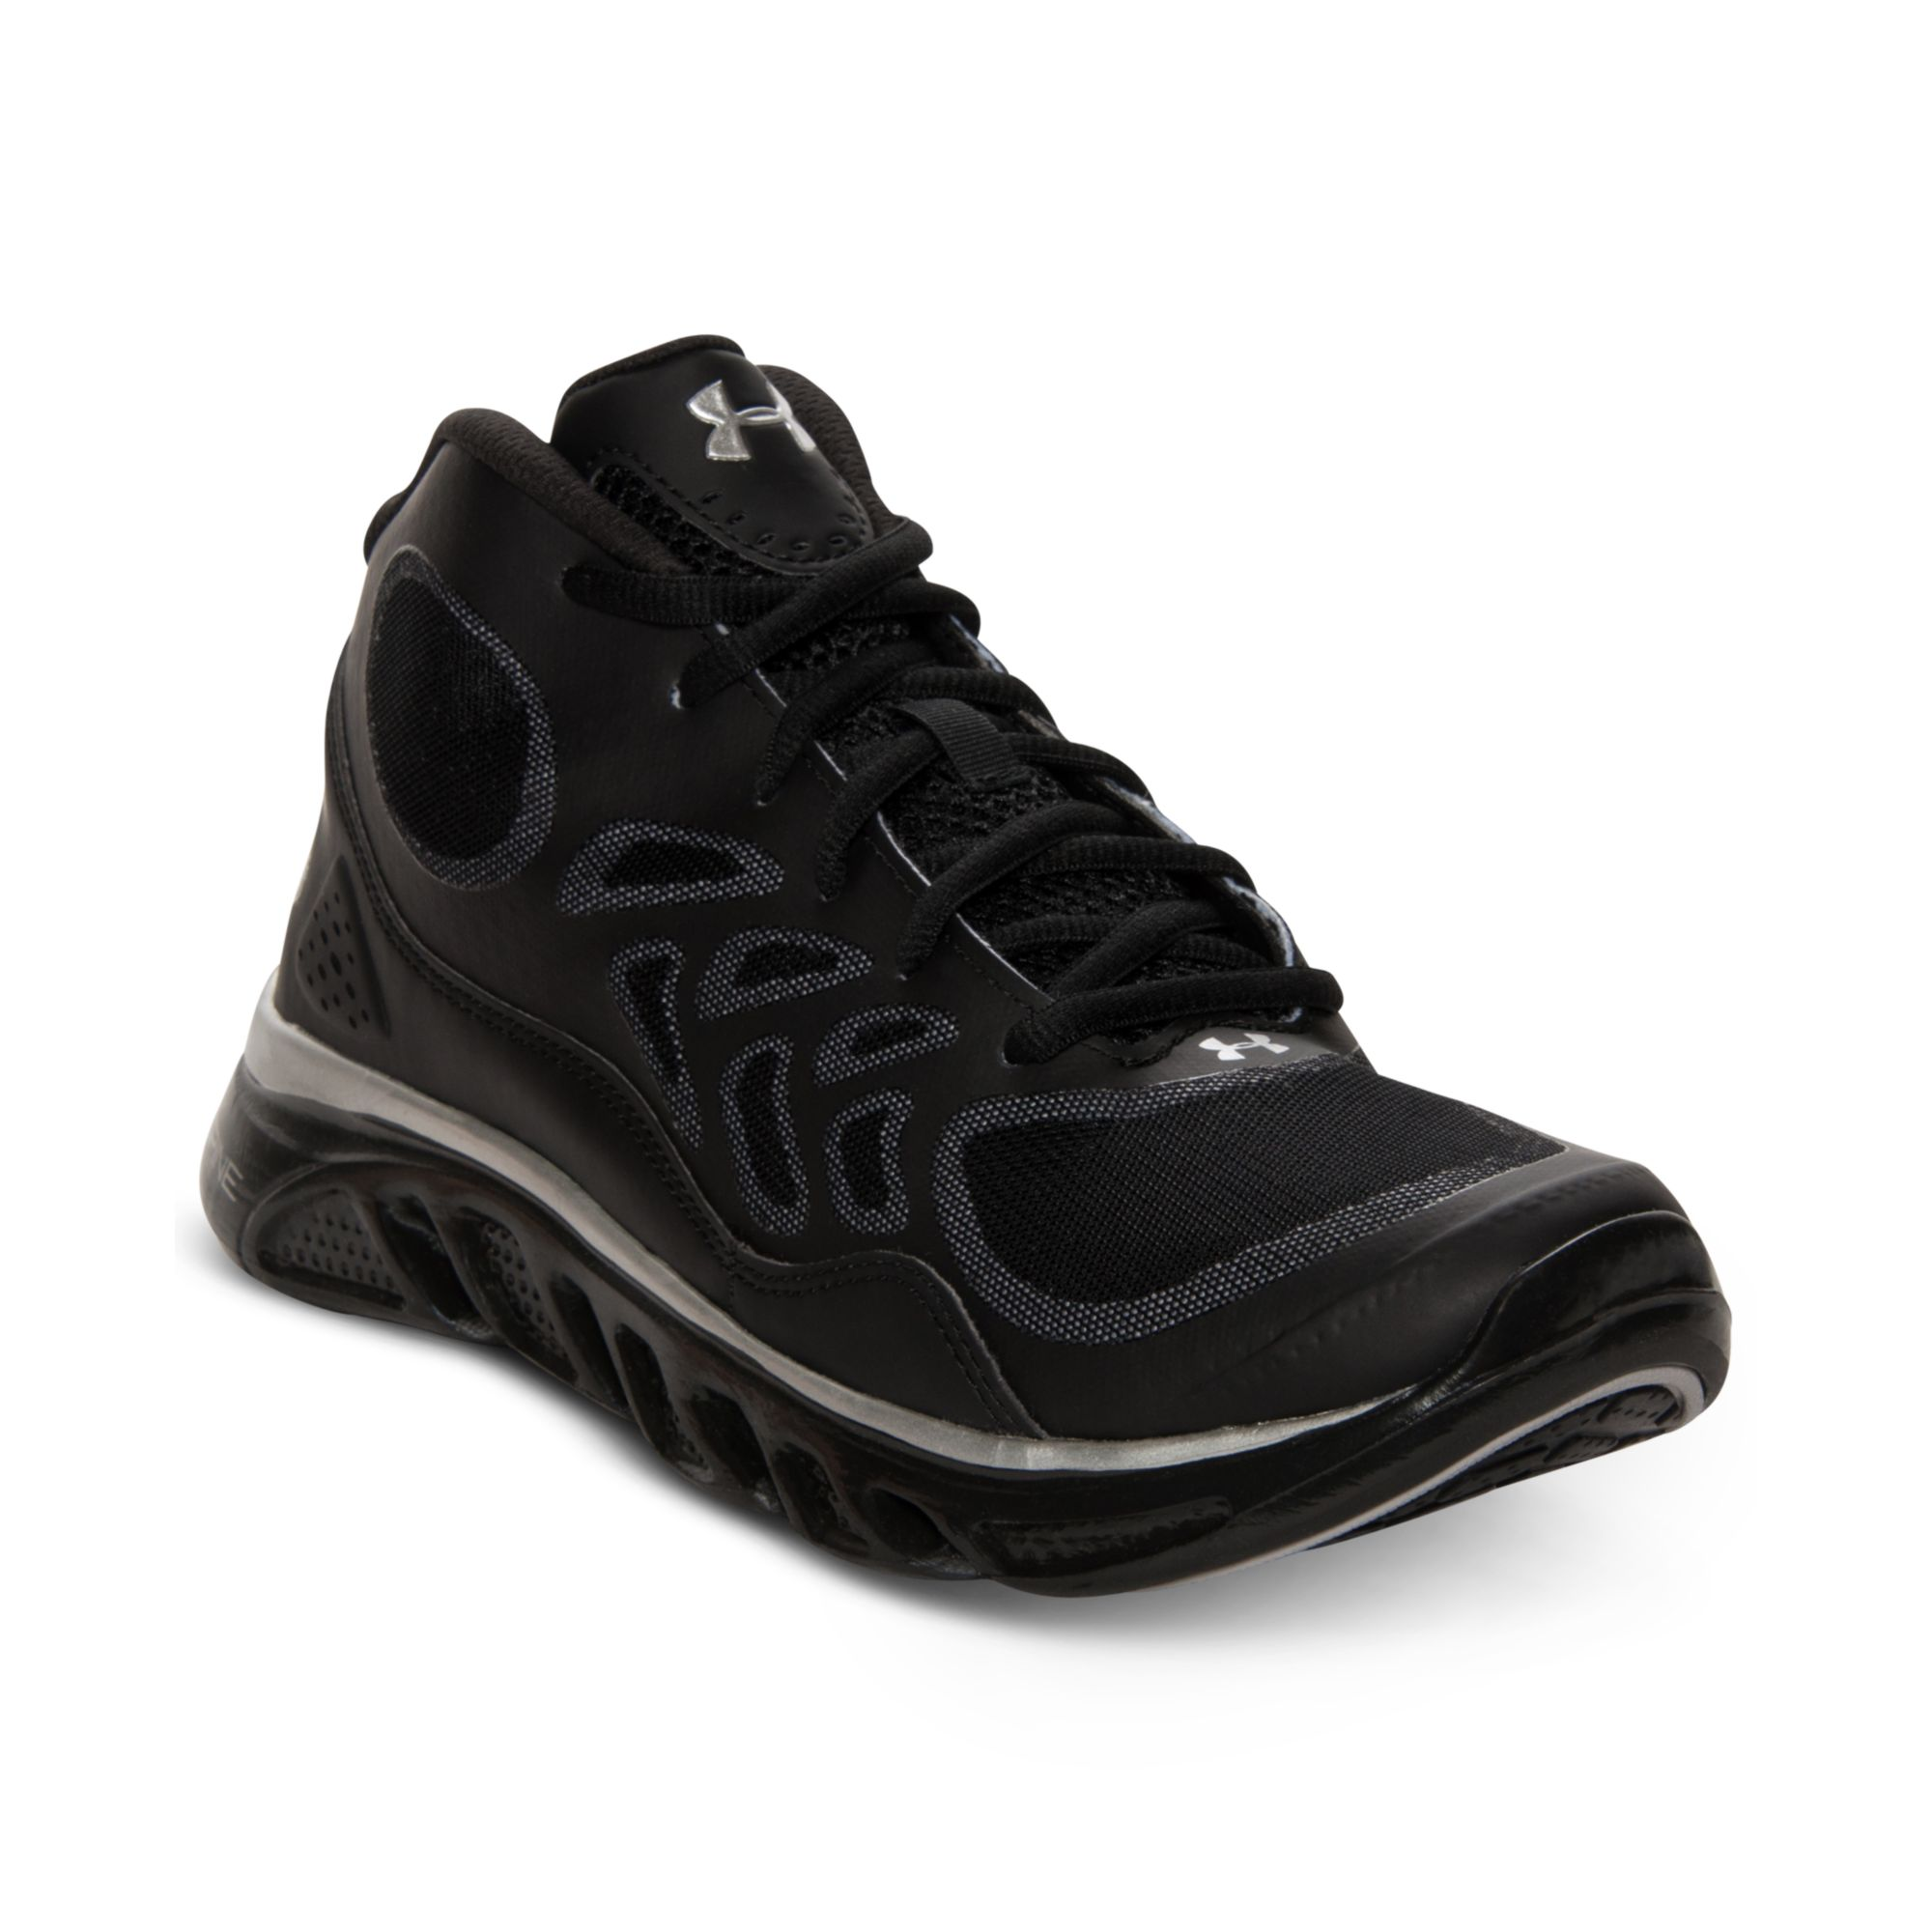 lyst under armour gameday trainer sneakers in black for men